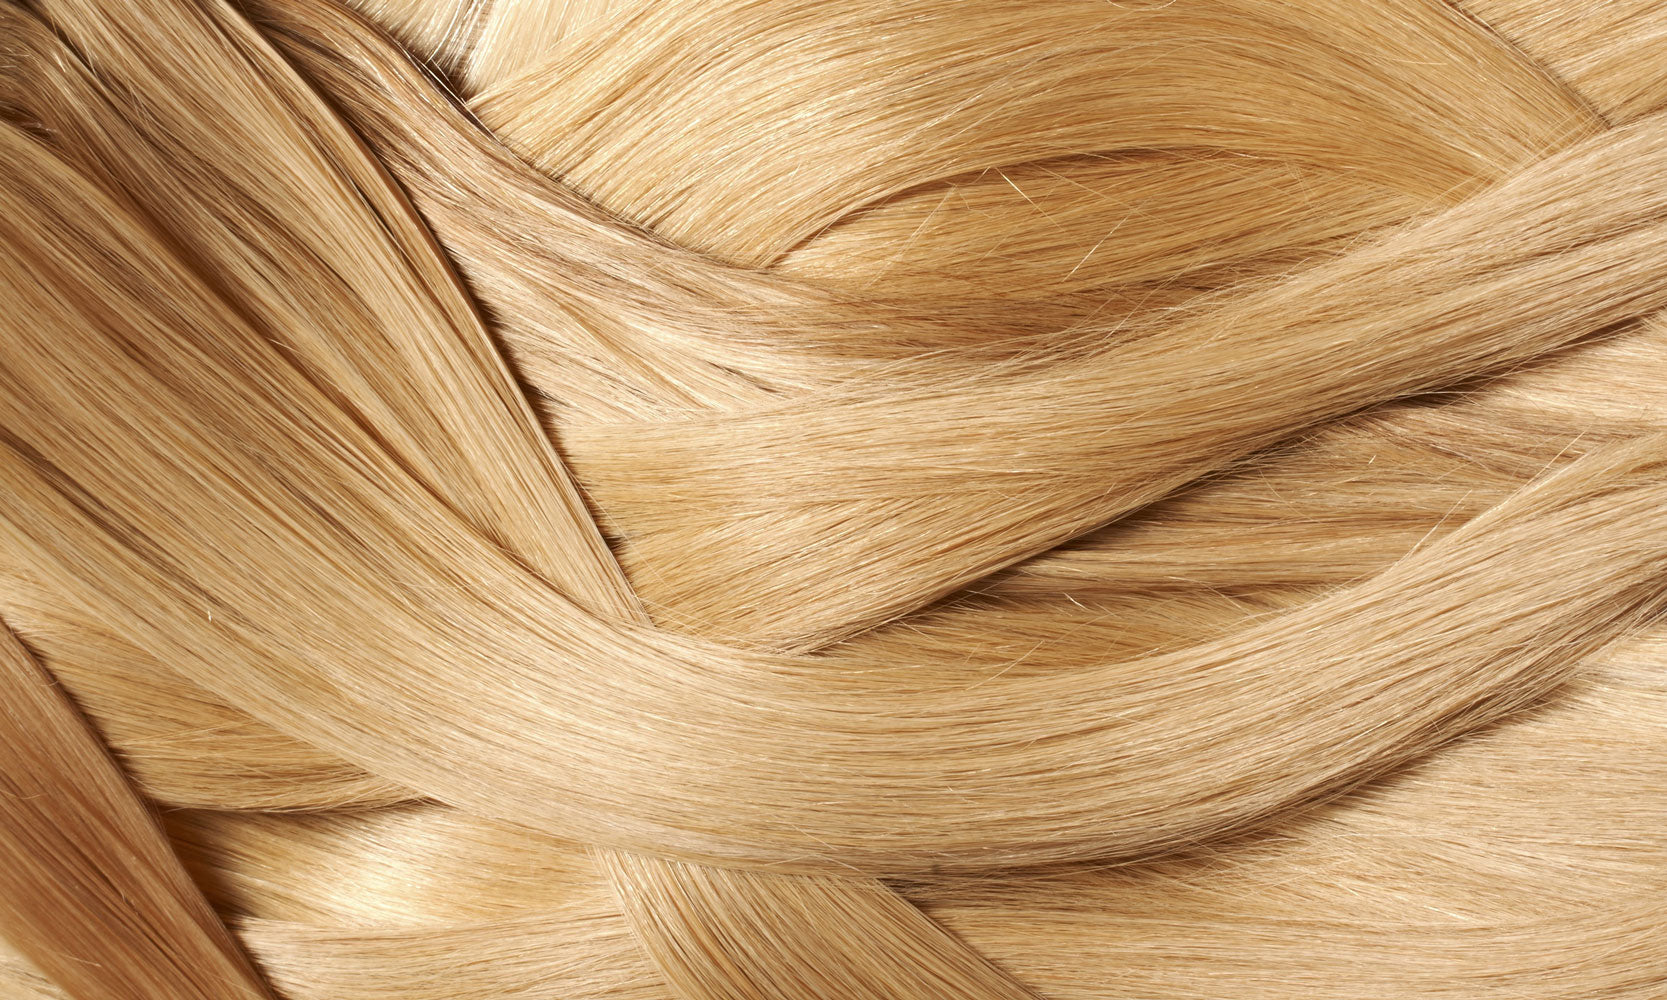 L Ange Hair Hair Styling Tools Hair Care Products